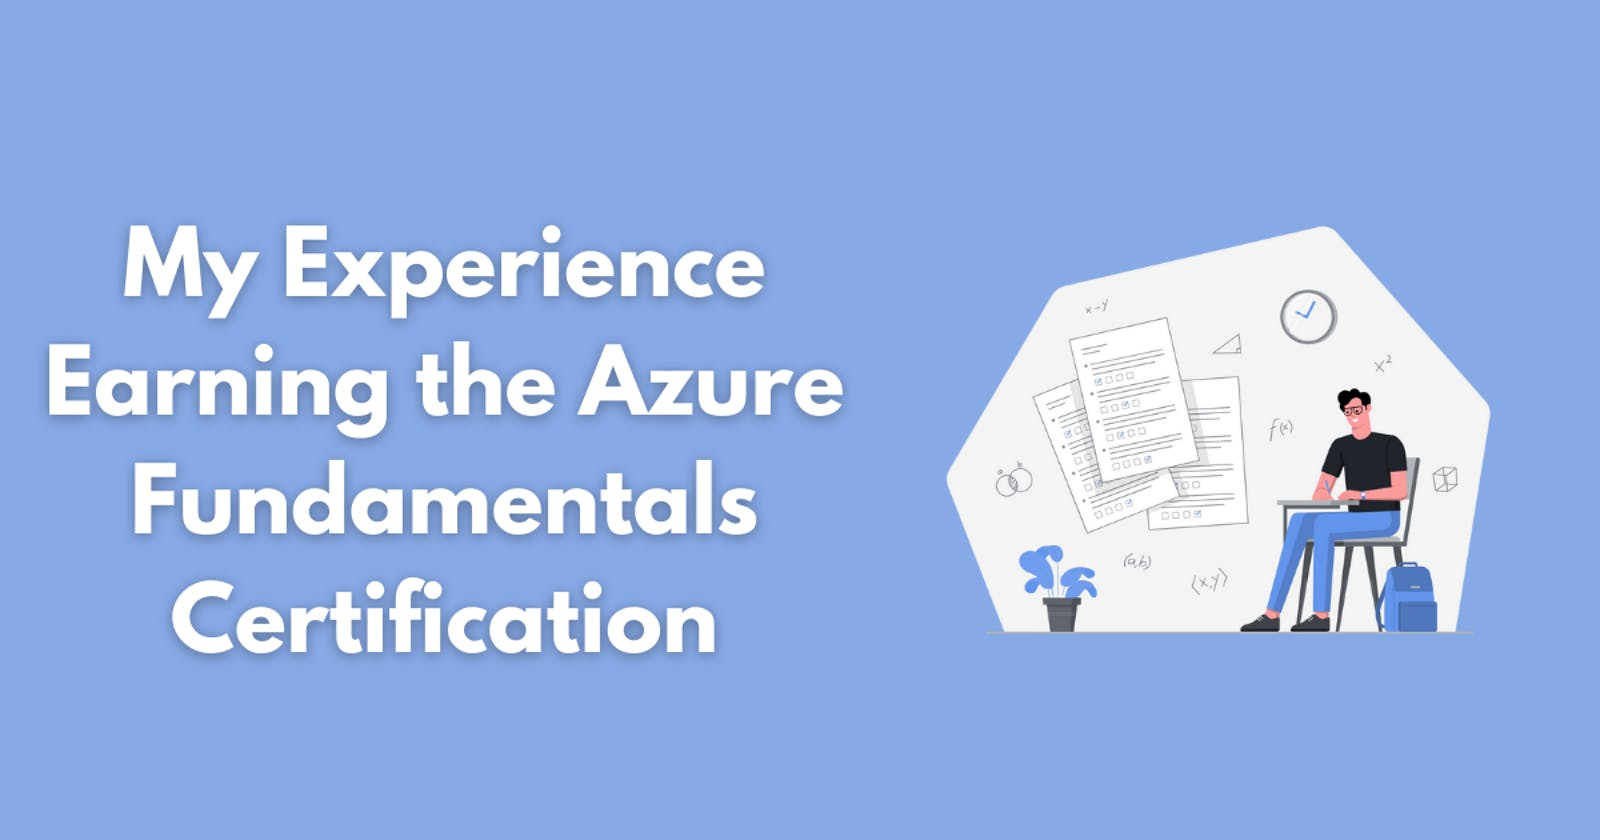 Why I Got the Azure Fundamentals Certification